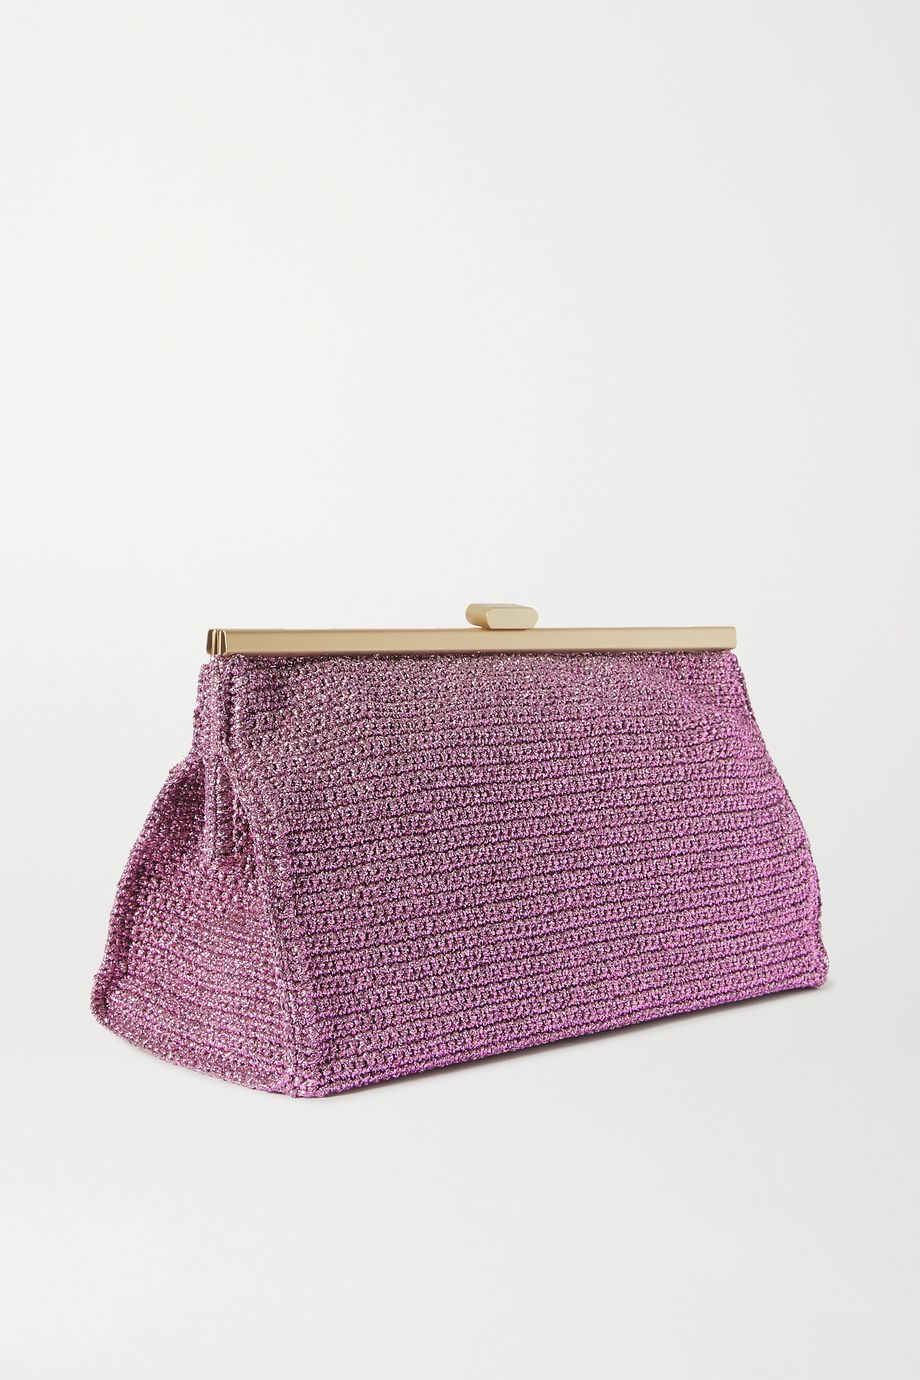 Mizele Bourse crochet-knit Lurex clutch